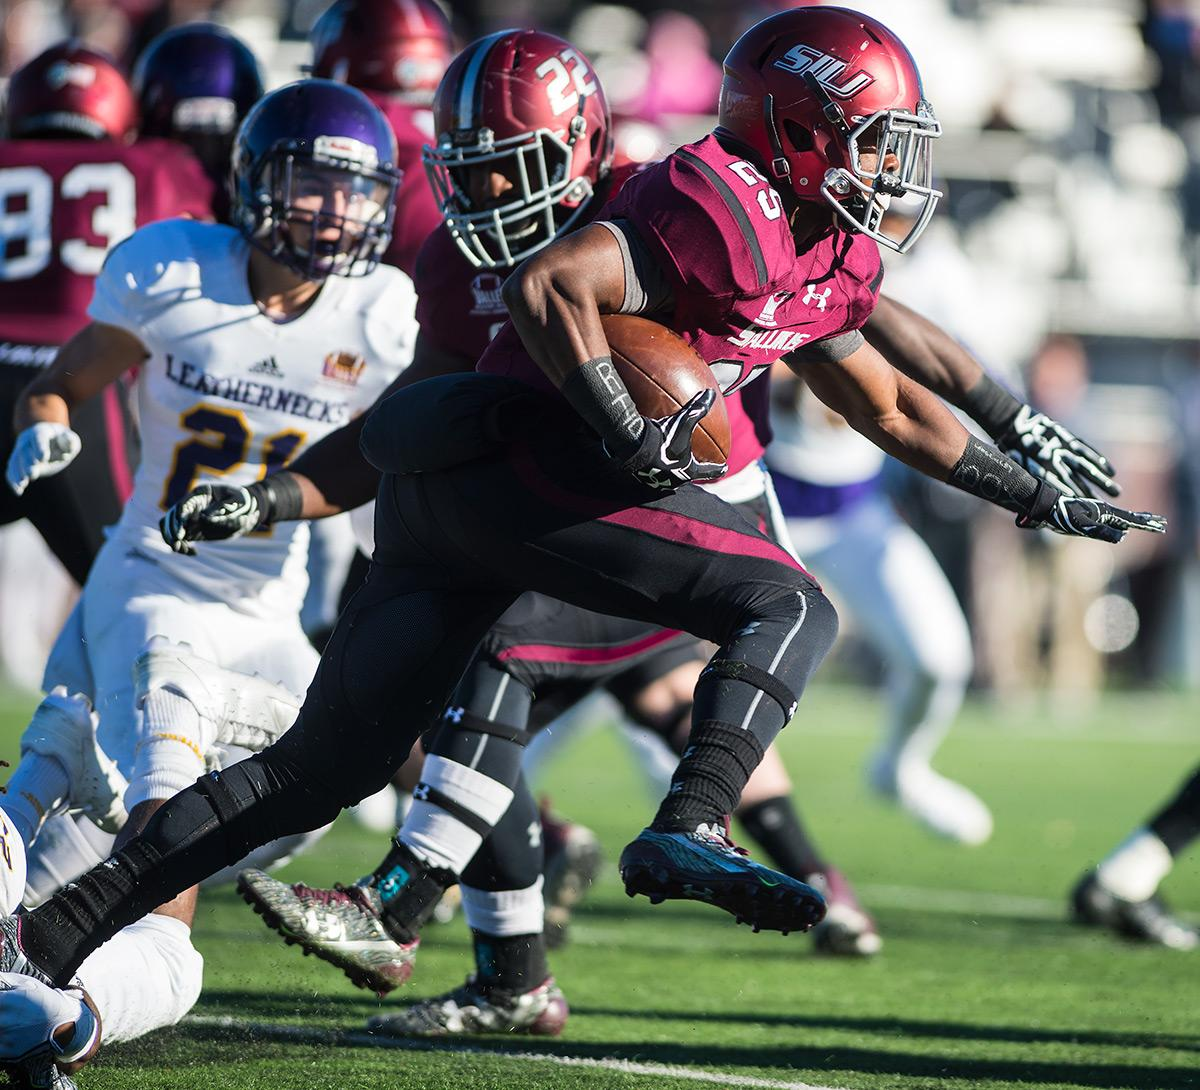 Freshman running back D.J. Davis takes the ball toward the end zone during the first half of the Salukis' matchup against WIU on Saturday, Nov. 19, 2016, at Saluki Stadium. (Jacob Wiegand | @jawiegandphoto)